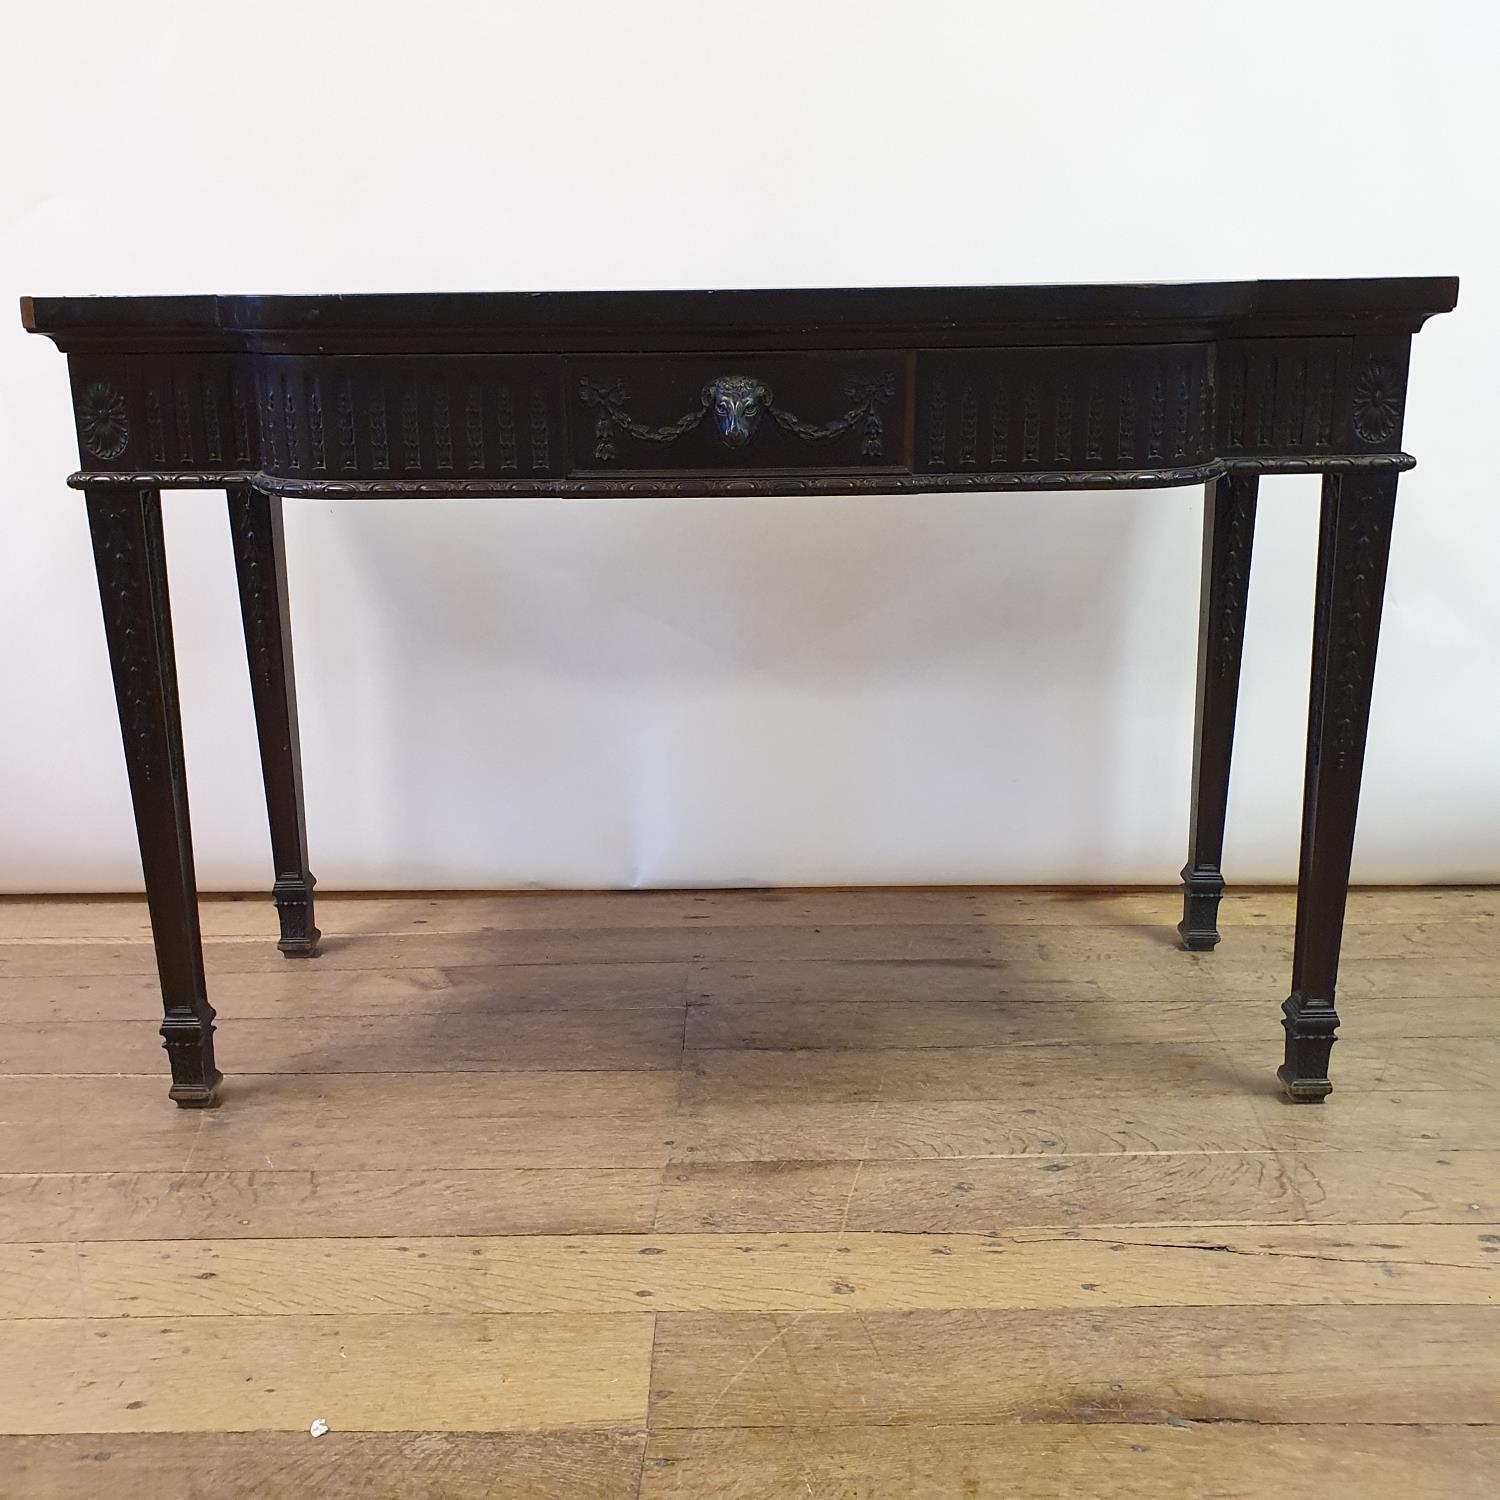 An early 20th century Adams revival mahogany side table, having a frieze drawer with carved rams - Image 7 of 7